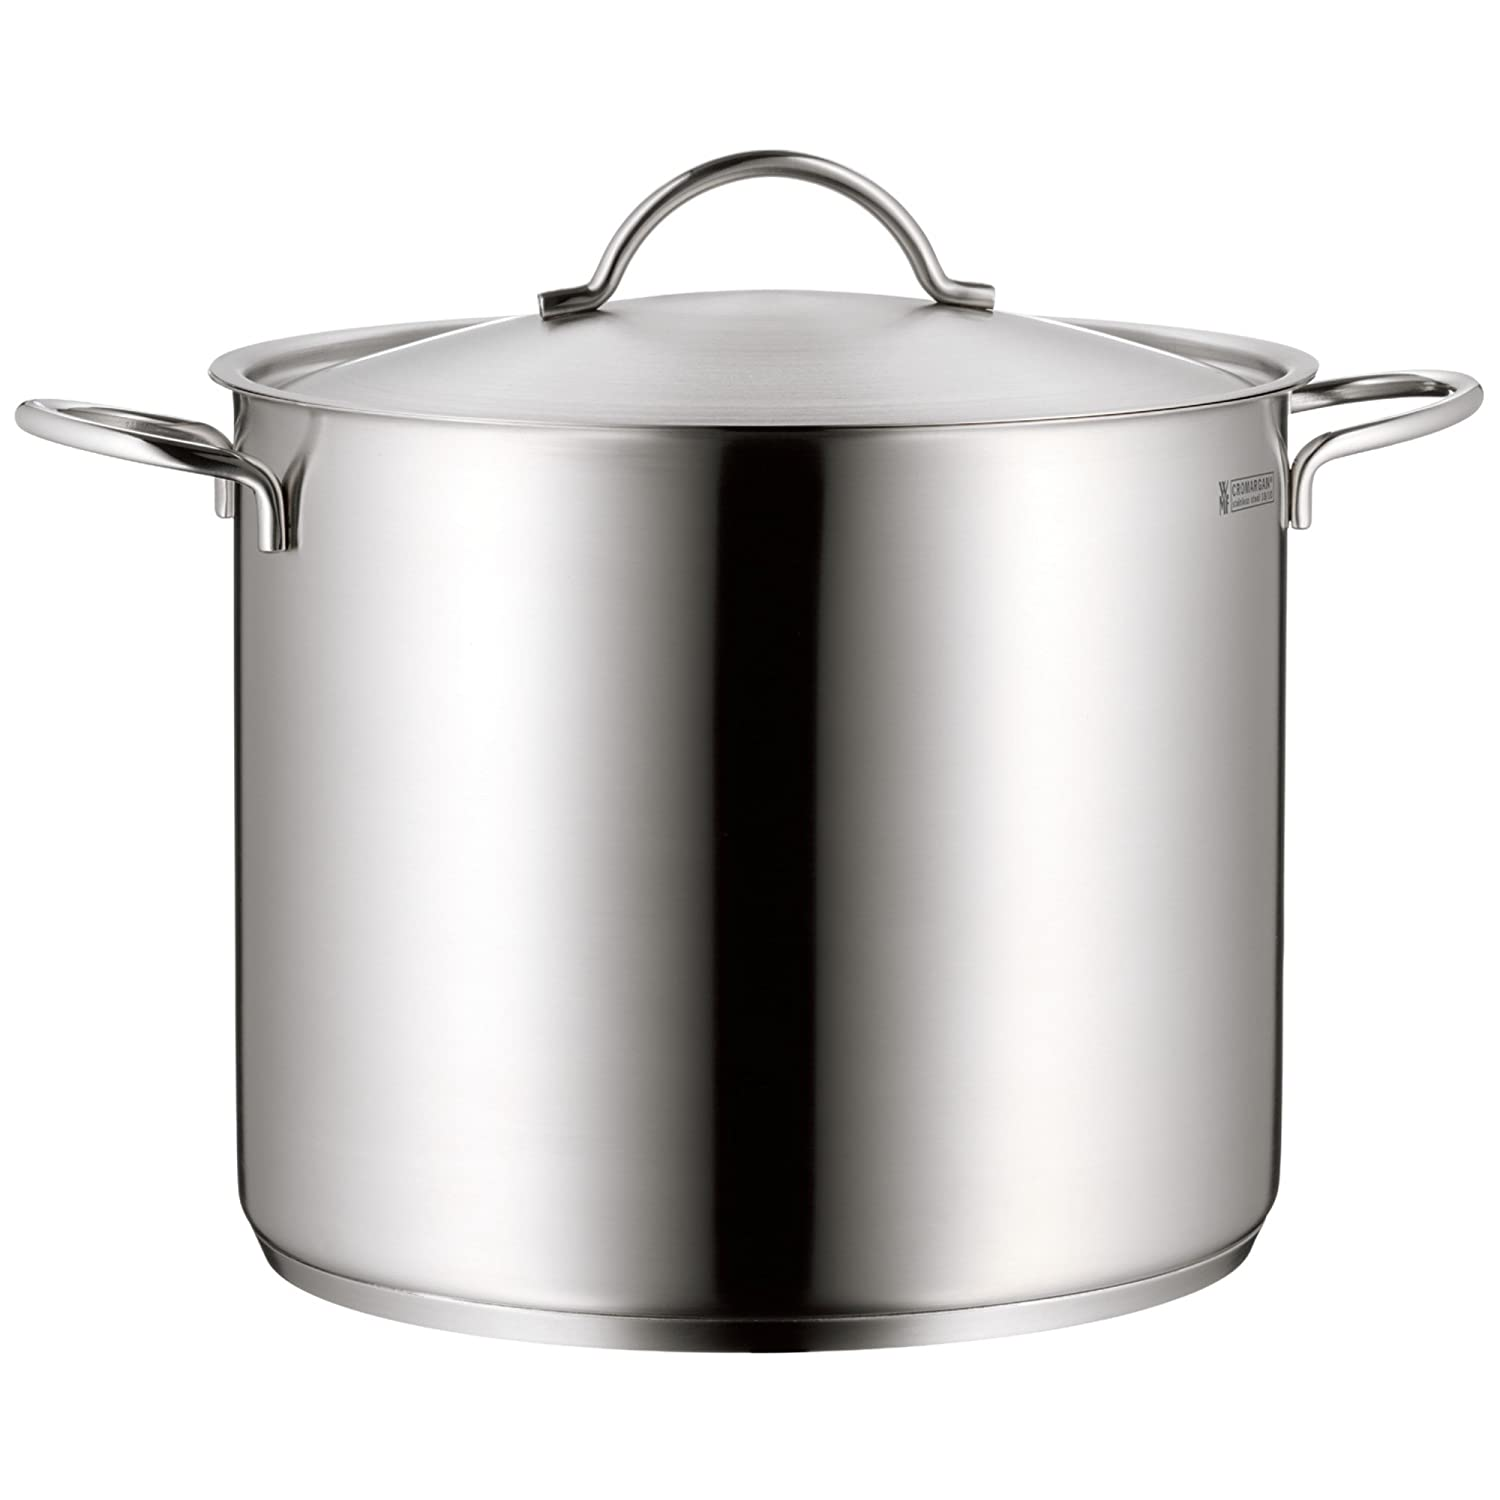 WMF Neutral Olla Alta con Tapa, Acero Inoxidable Mate, 28 cm: Amazon.es: Hogar